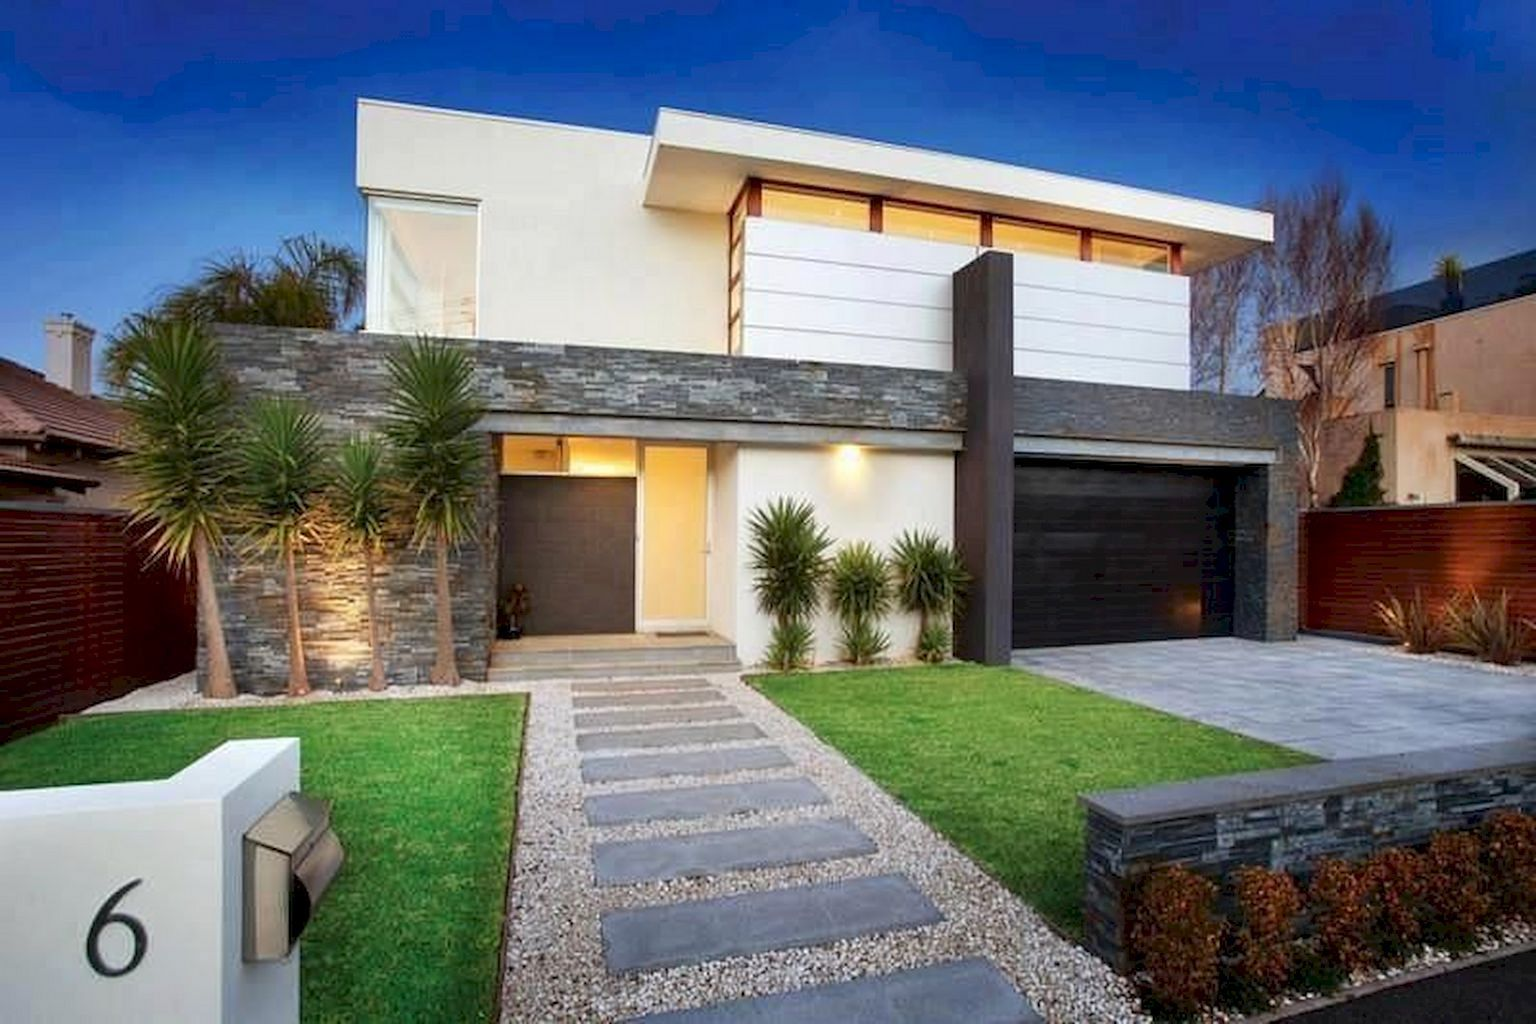 12 Cool Modern Front Yard Design Ideas You Have To See ...